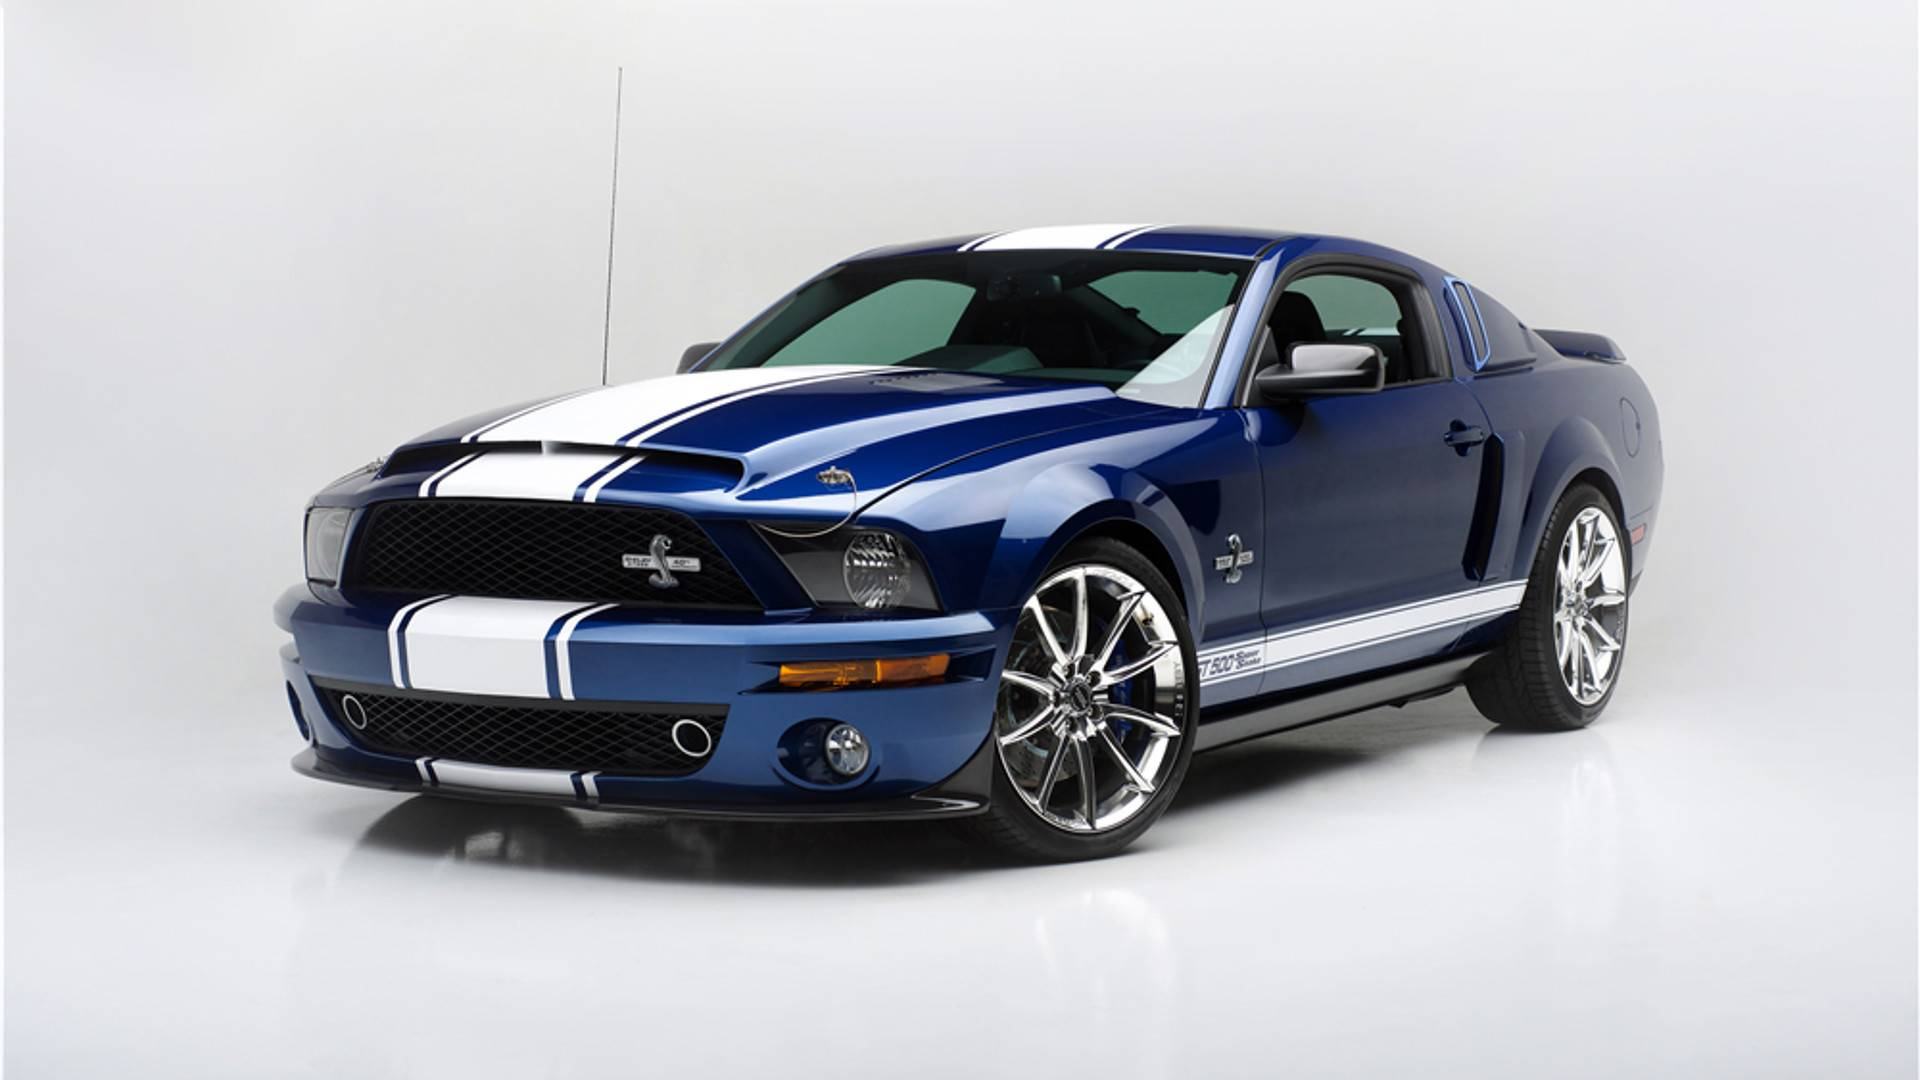 shelby gt500 super snake auction to benefit vegas first responders. Black Bedroom Furniture Sets. Home Design Ideas